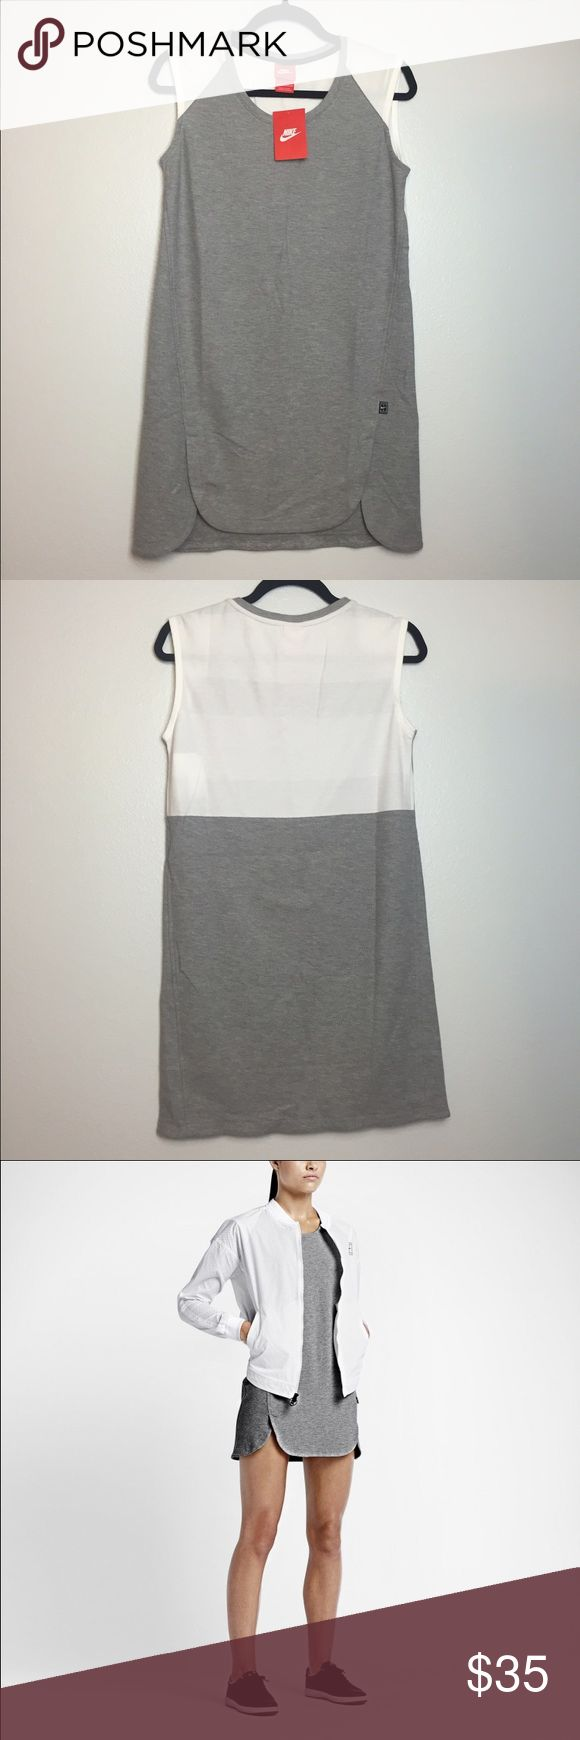 Nike Tennis Dress NWT Can be worn as athleisure with sneakers, very cute! Size is XS but looks like it would fit an S too. It is still too small for me however (I'm a medium). Price is negotiable. Nike Dresses